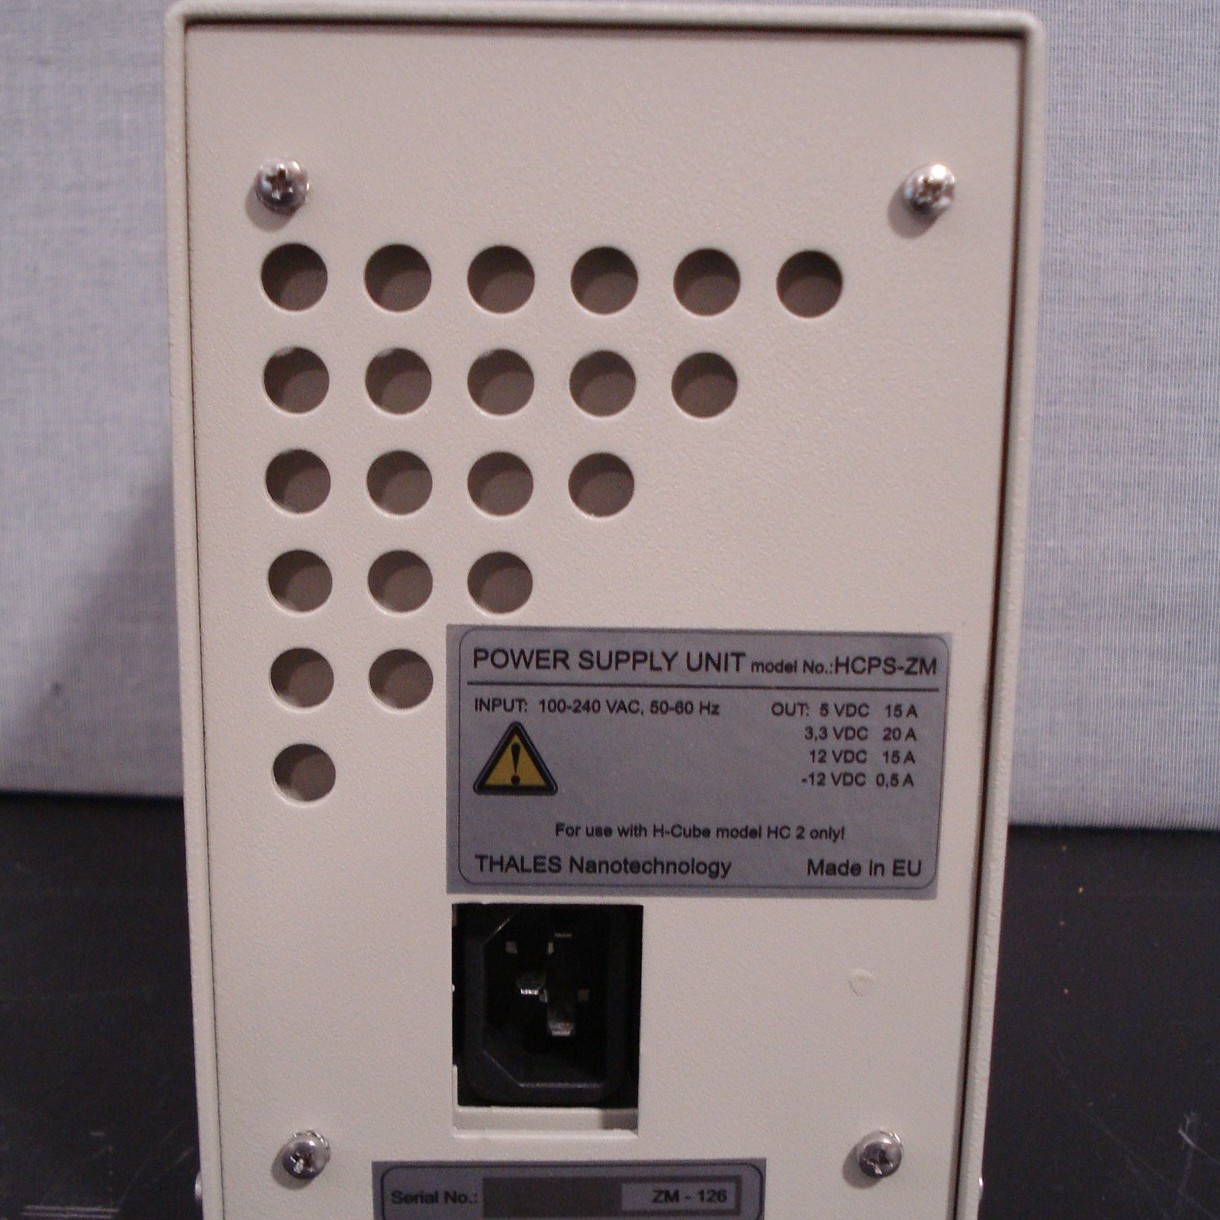 Thales Power Supply Unit Model HCPS-ZM Image